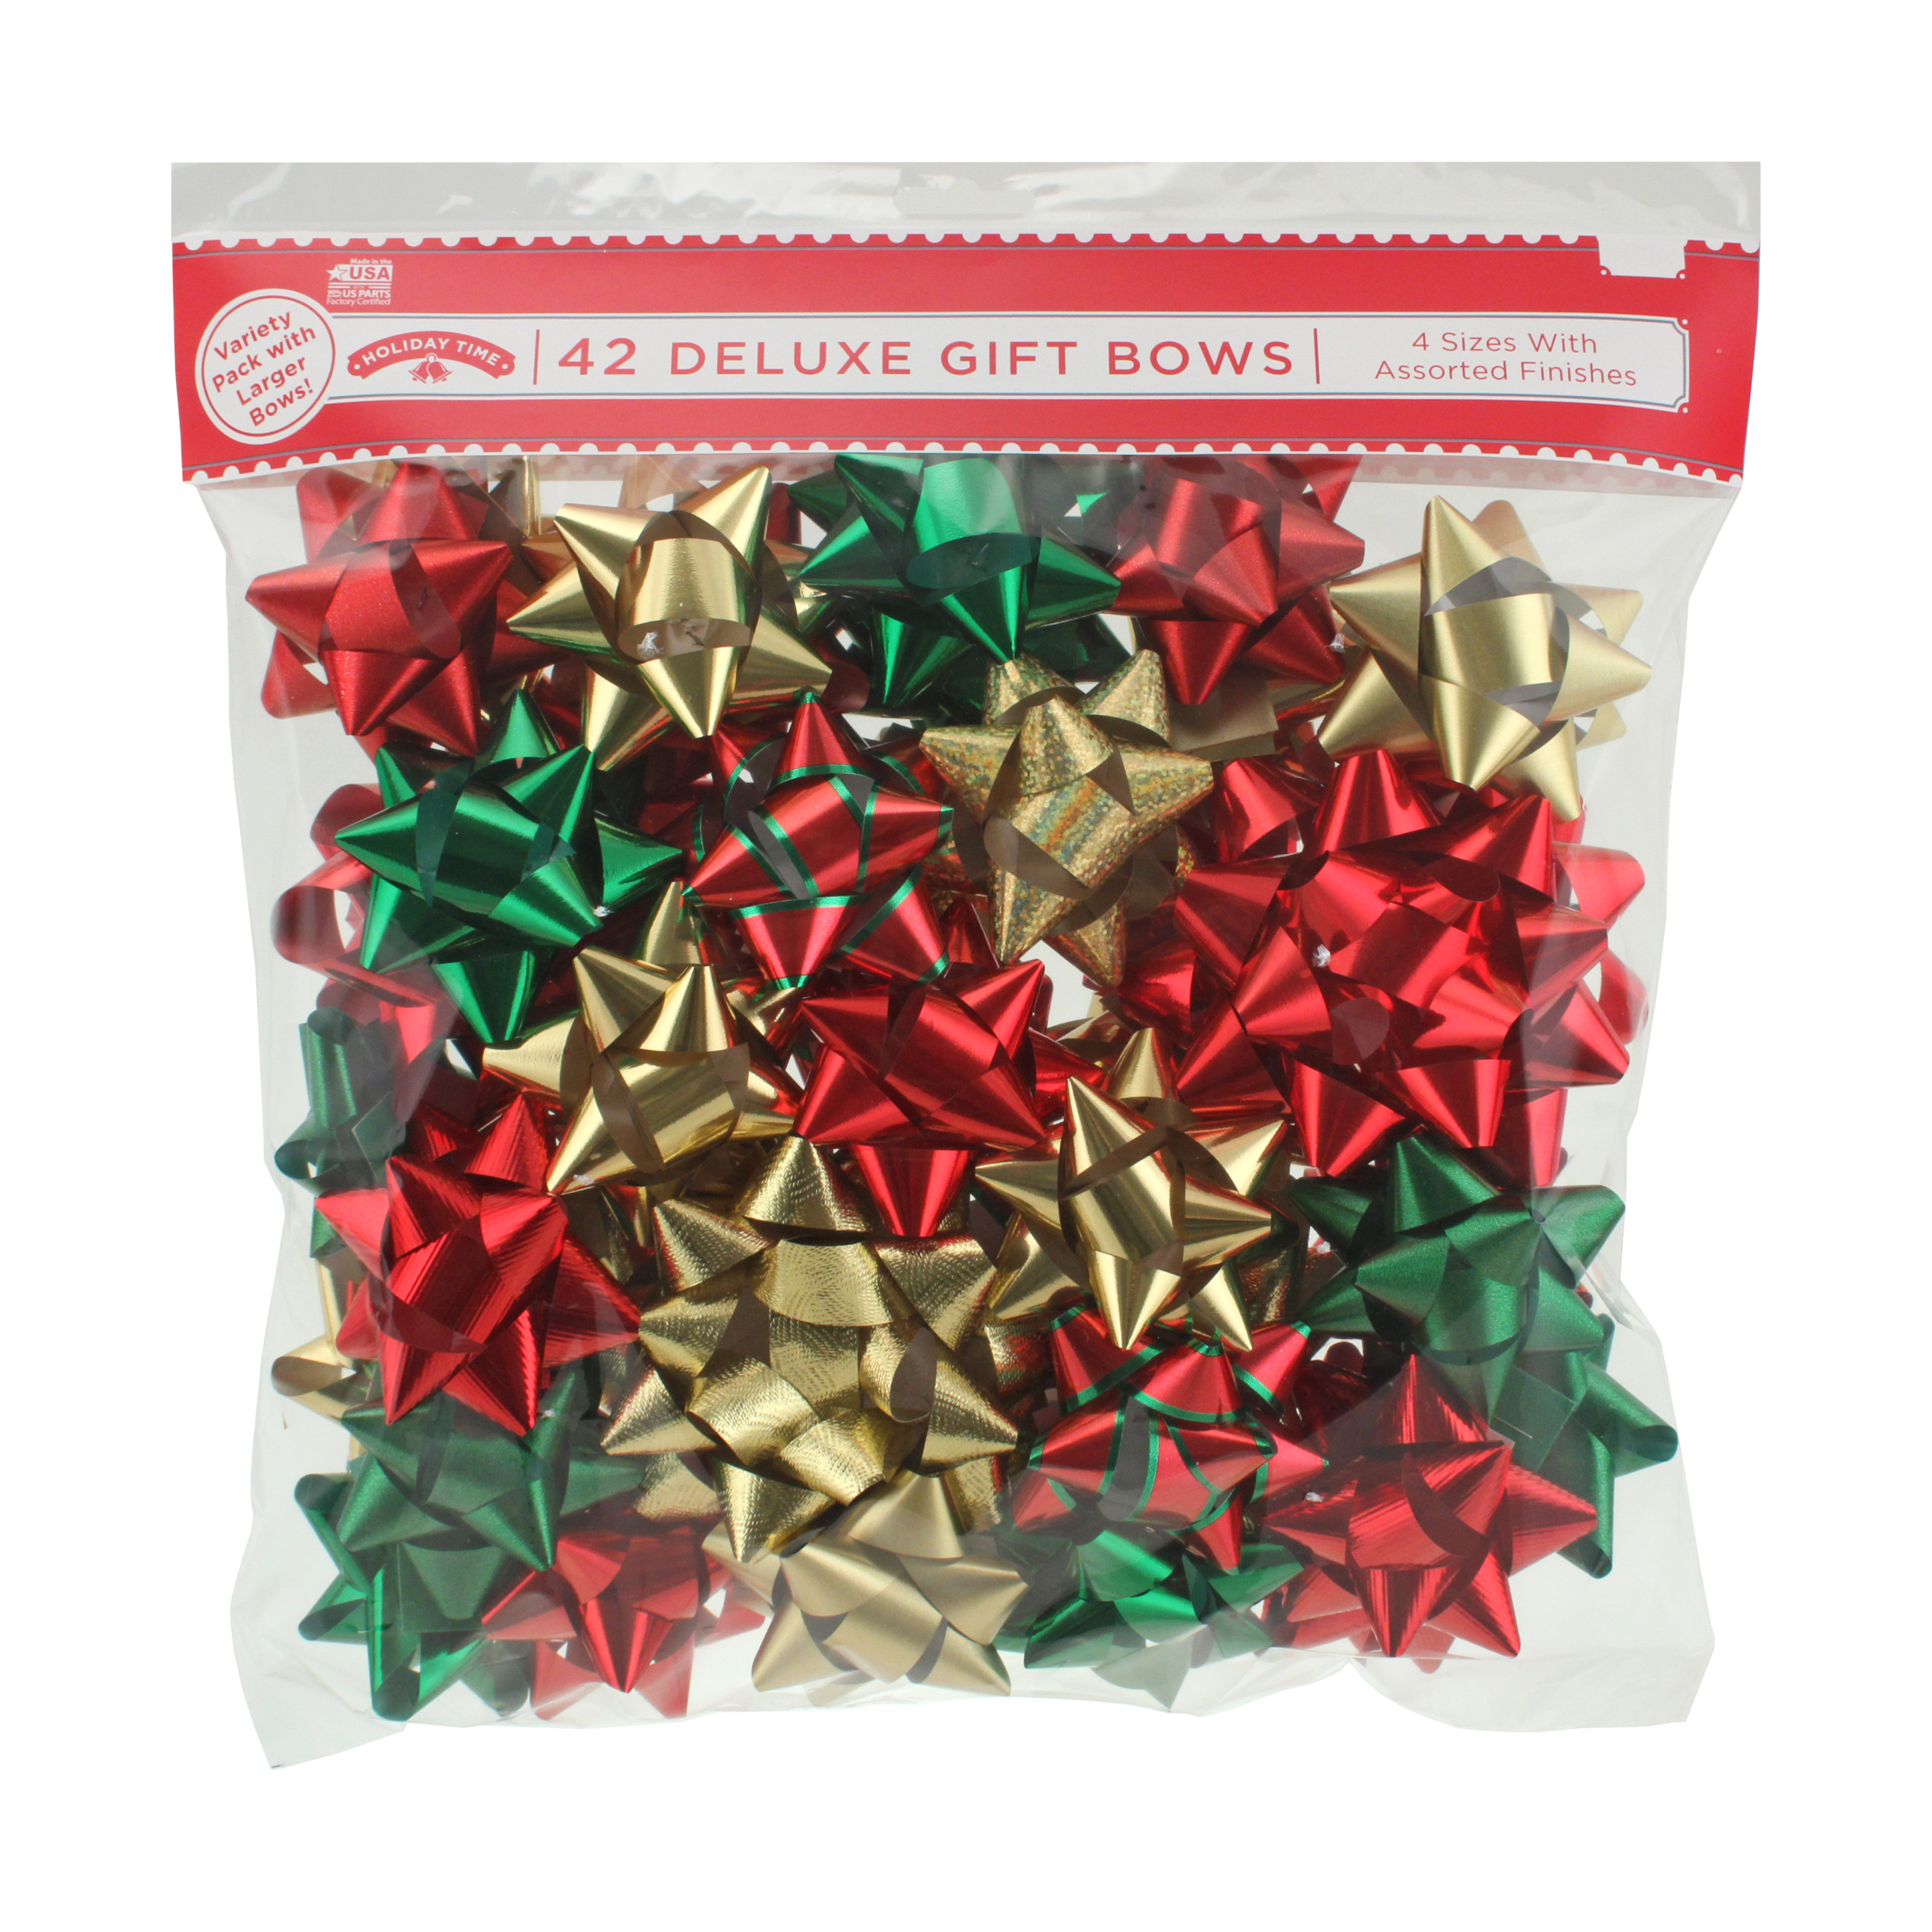 42 COUNT GIFT BOW ASSORTMENT - RED/GREEN/GOLD